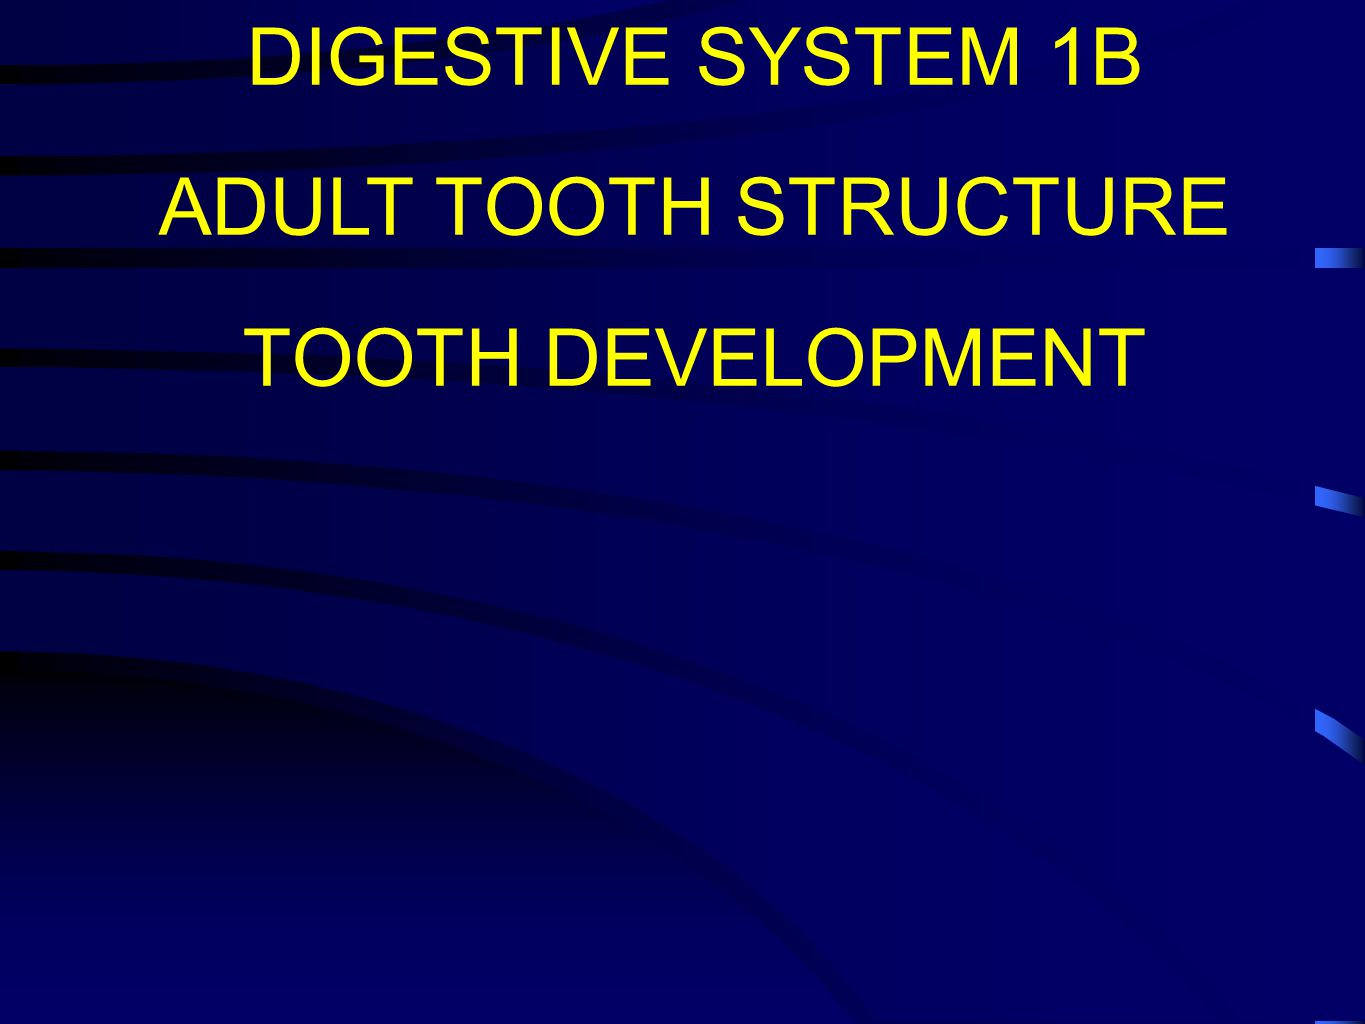 DIGESTIVE SYSTEM 1B ADULT TOOTH STRUCTURE TOOTH DEVELOPMENT